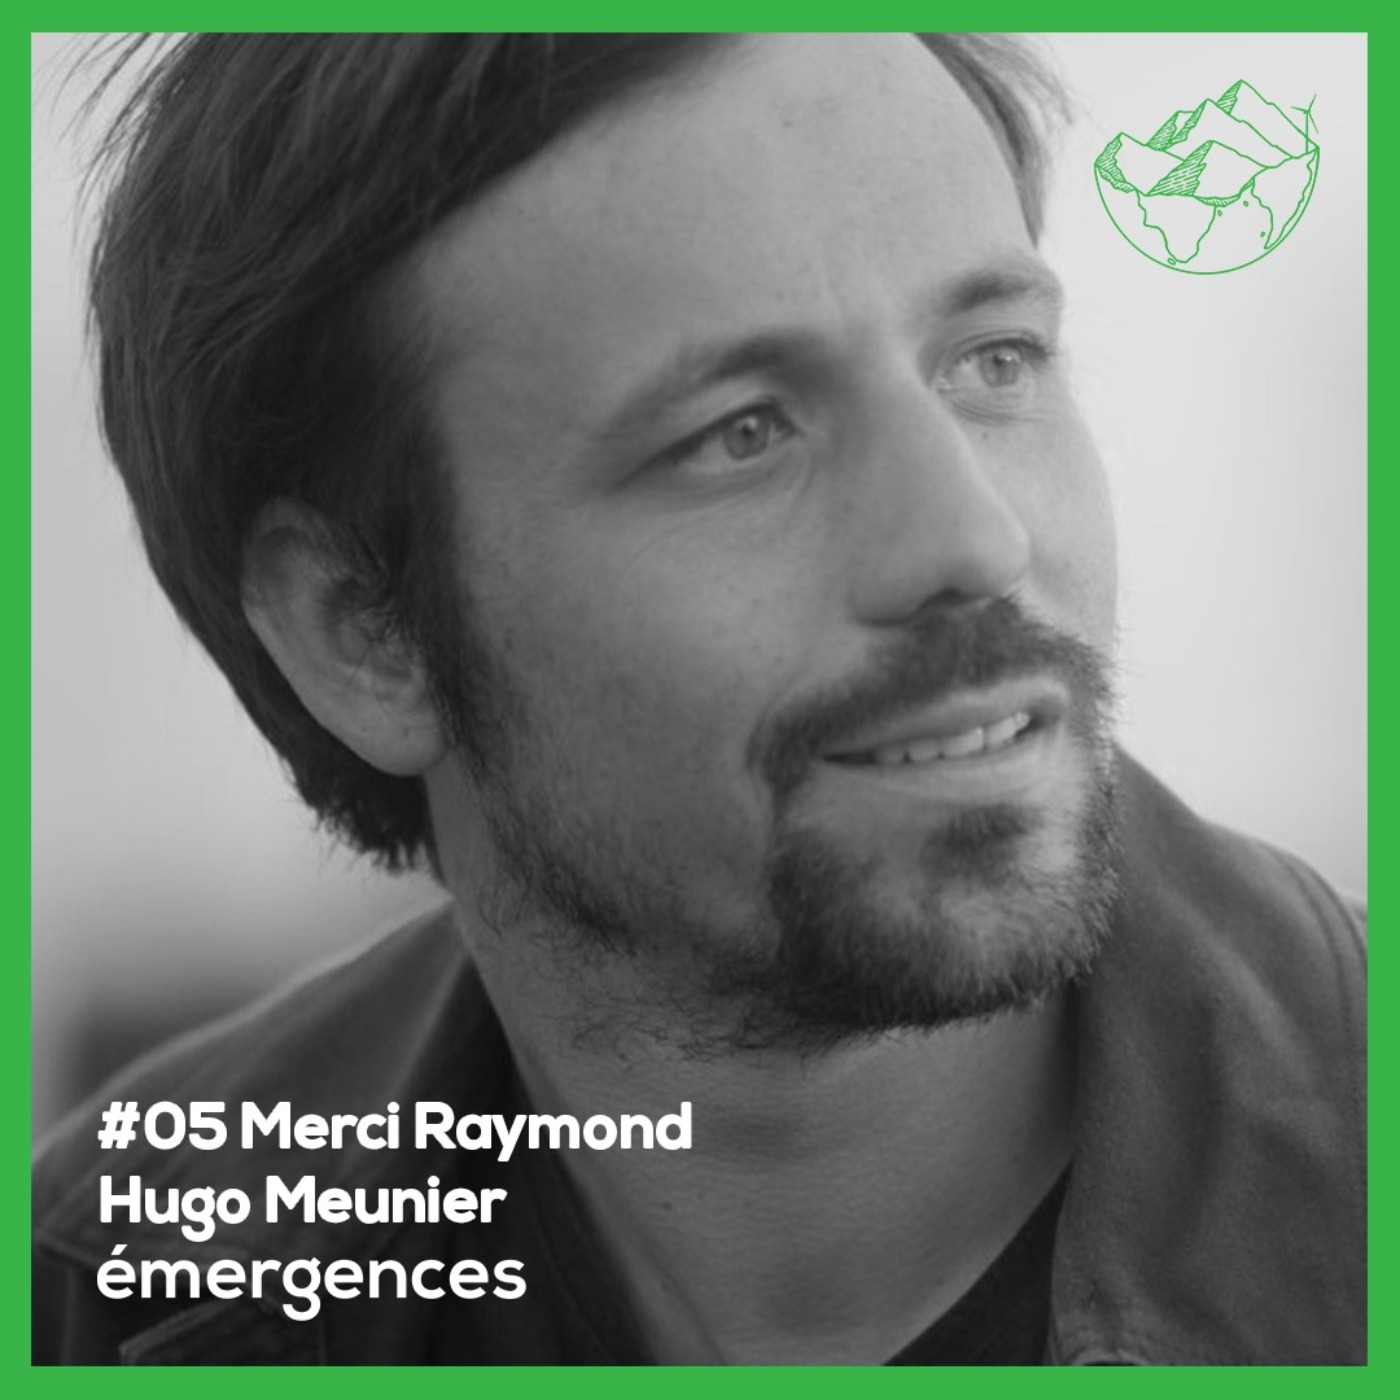 Emergences#05 - Hugo Meunier - Merci Raymond